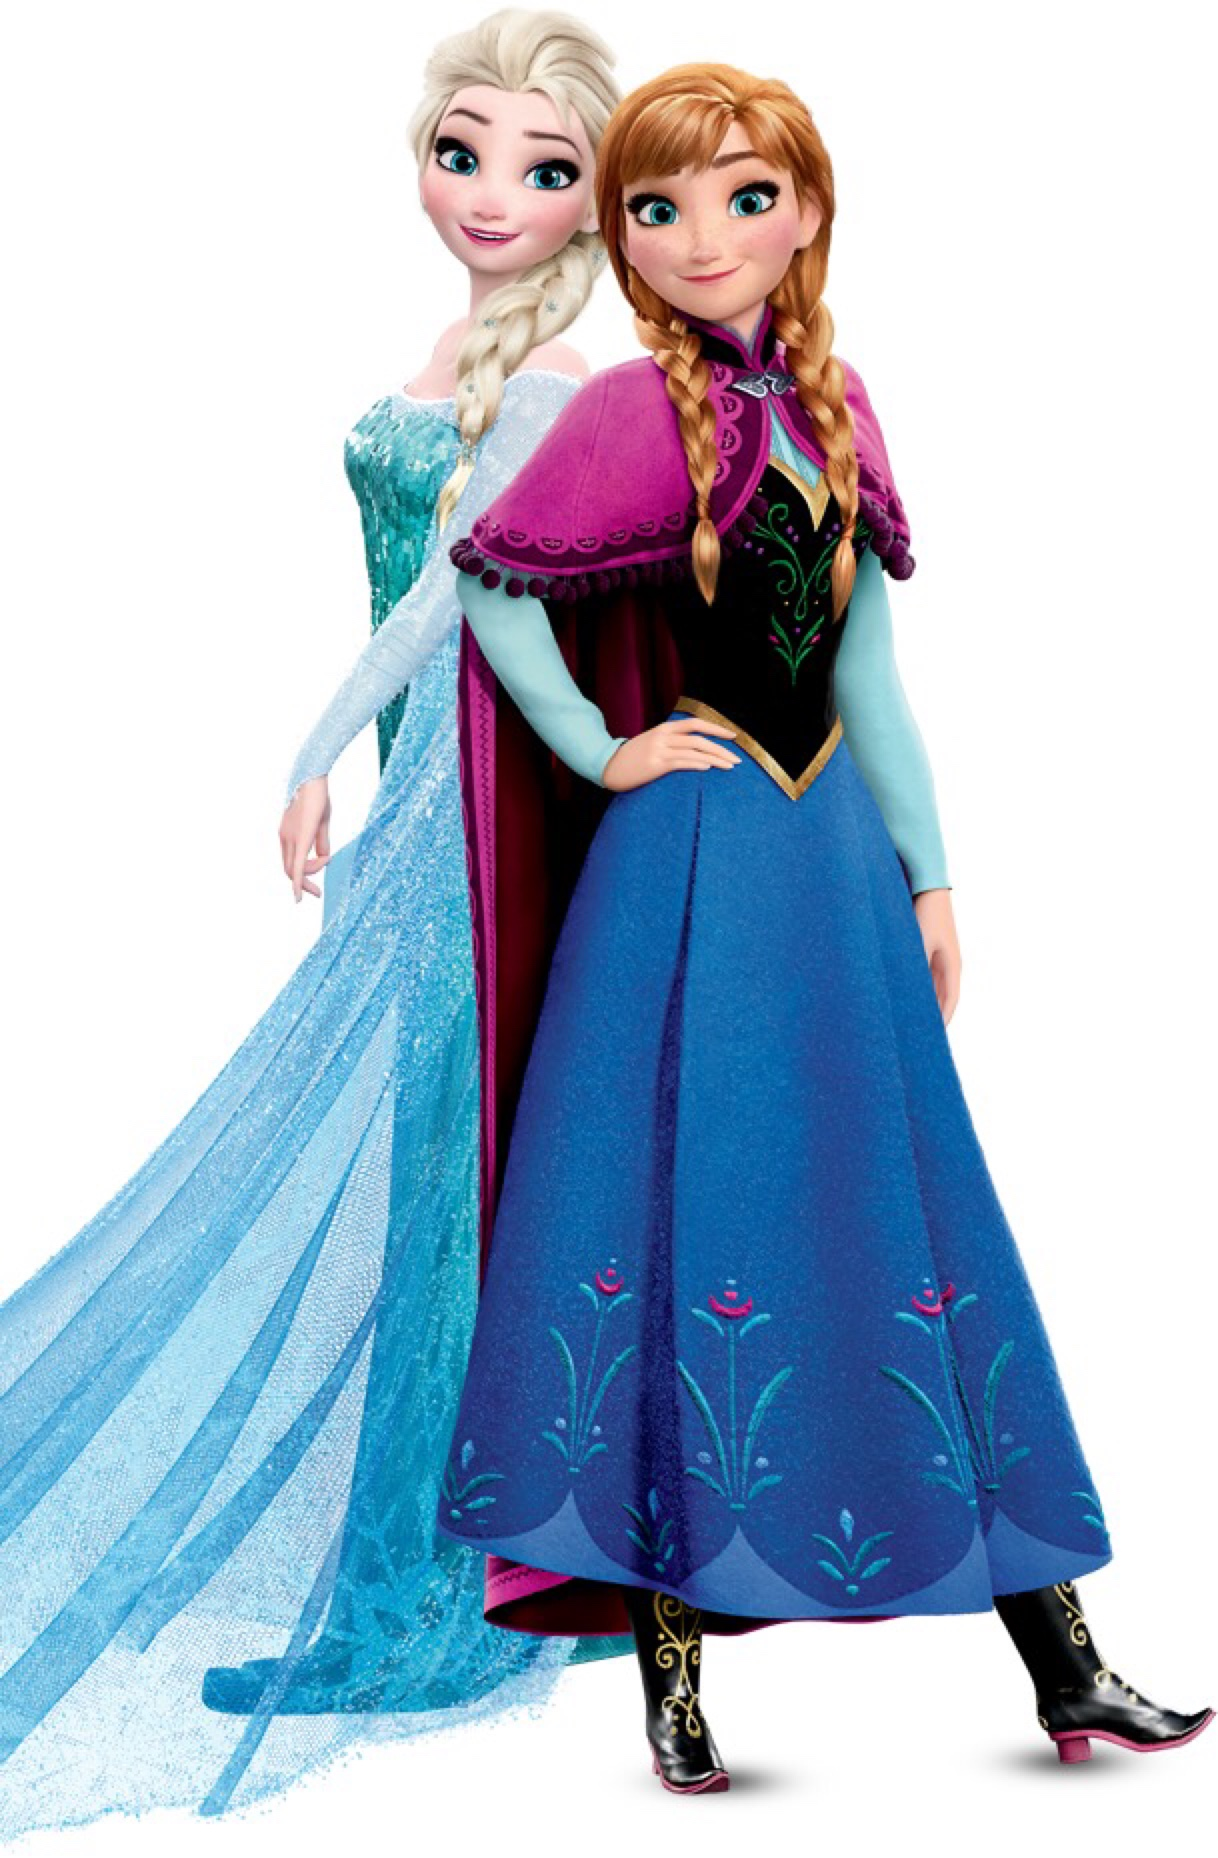 Princess Anna images Anna and Elsa HD wallpaper and background photos ...